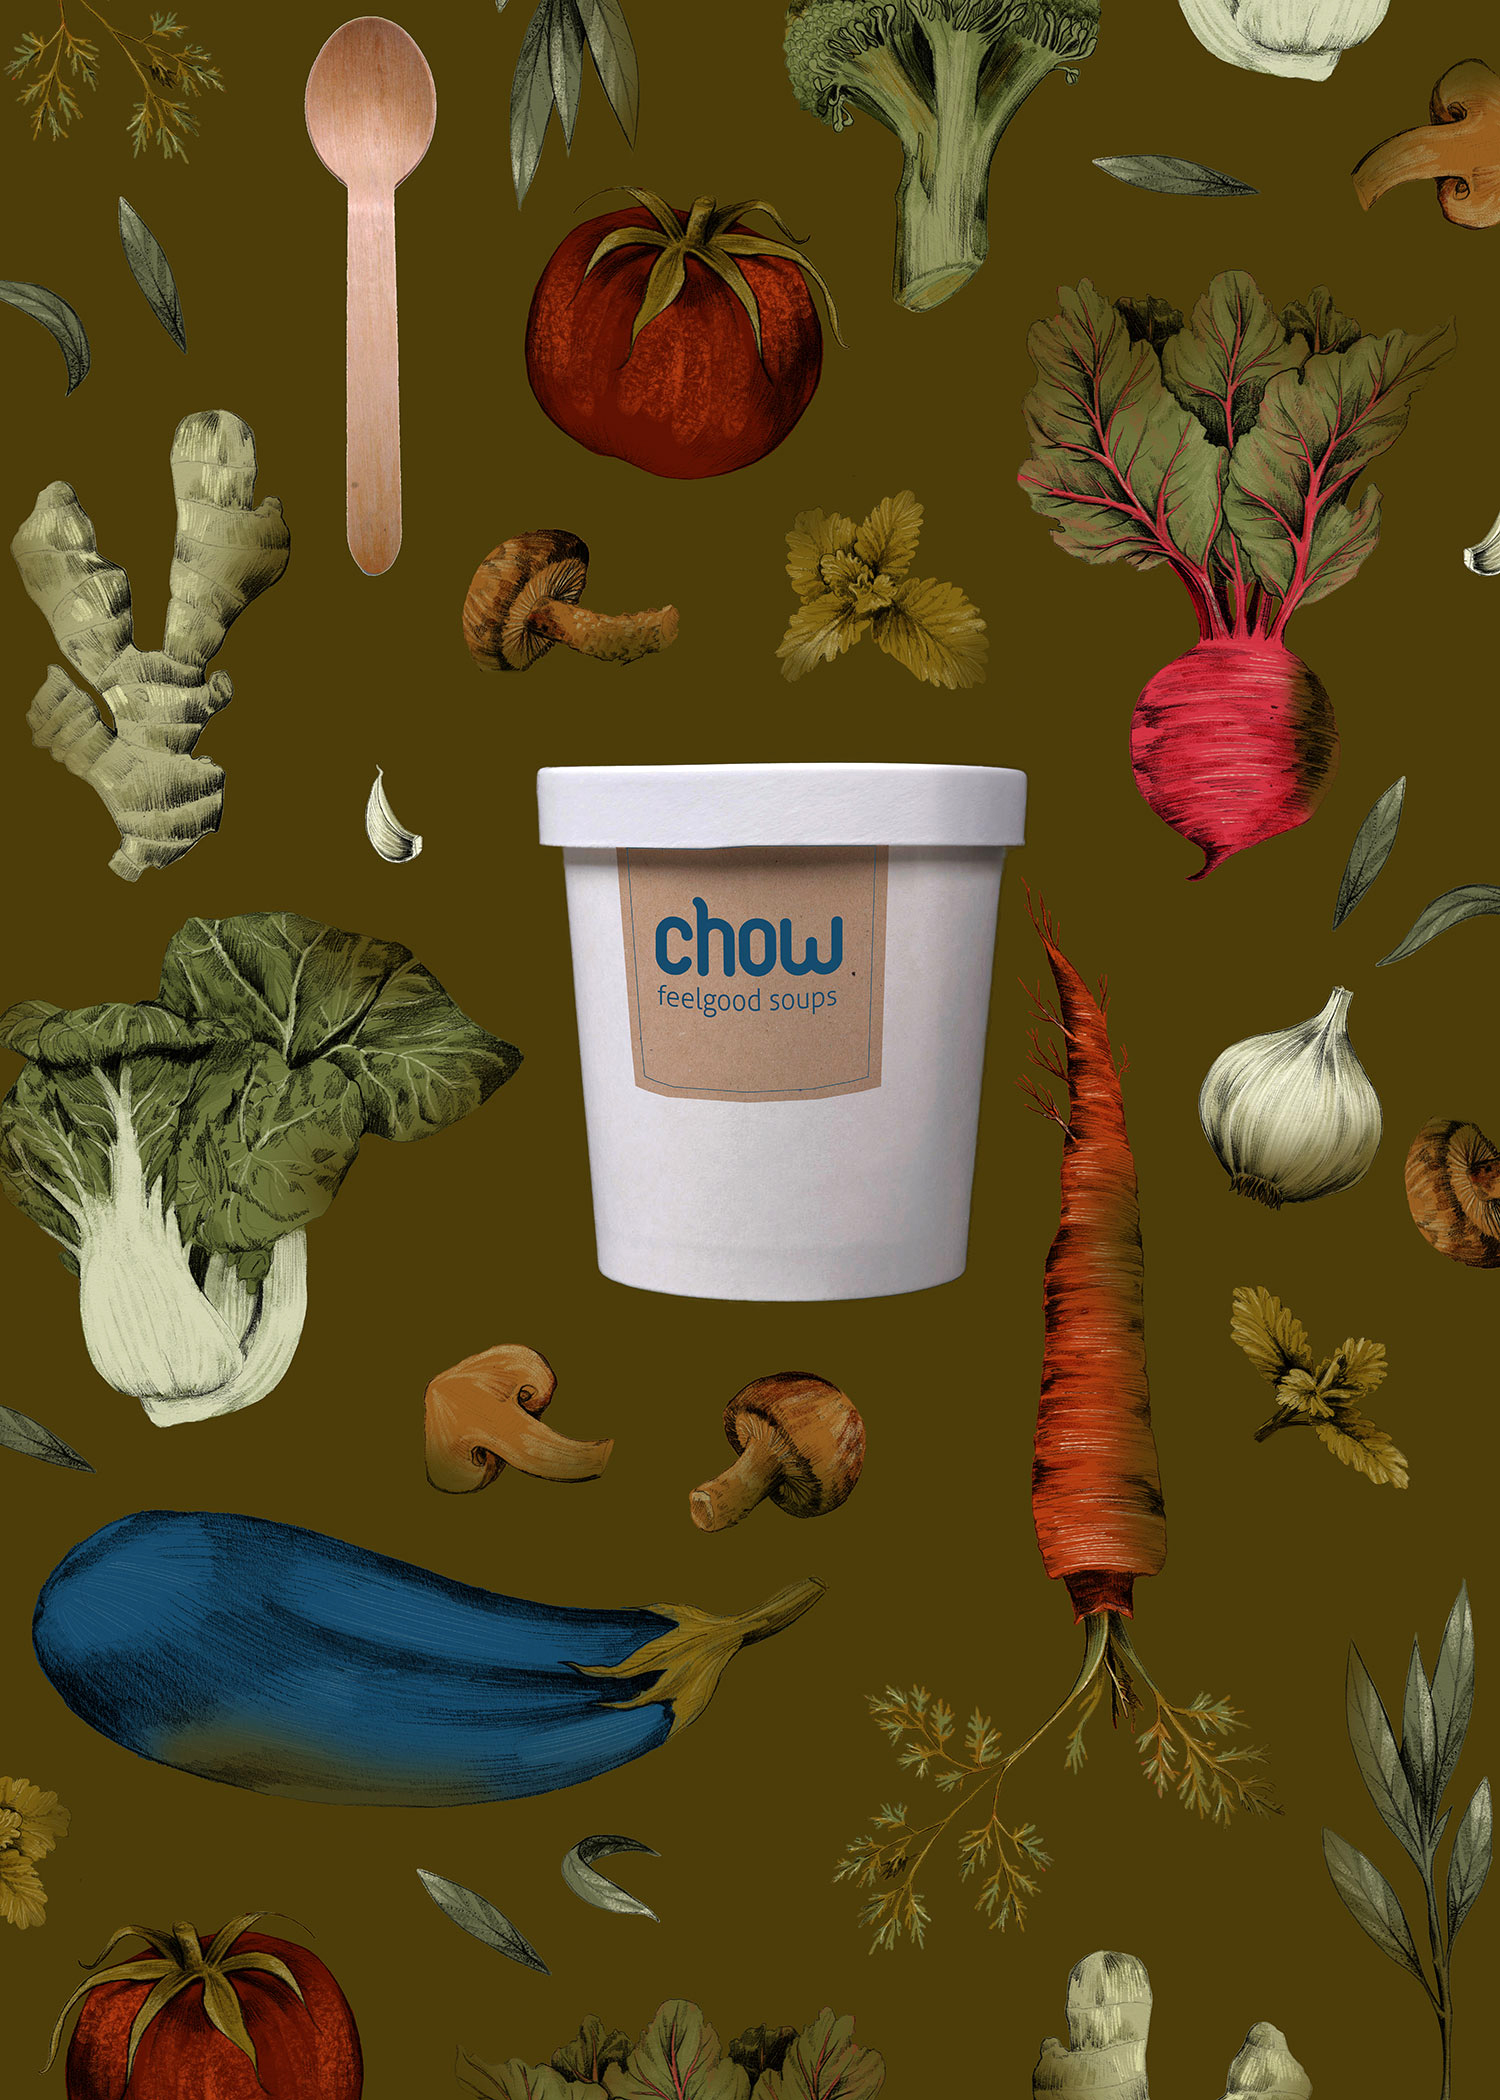 fig. 1. Chow Soup poster